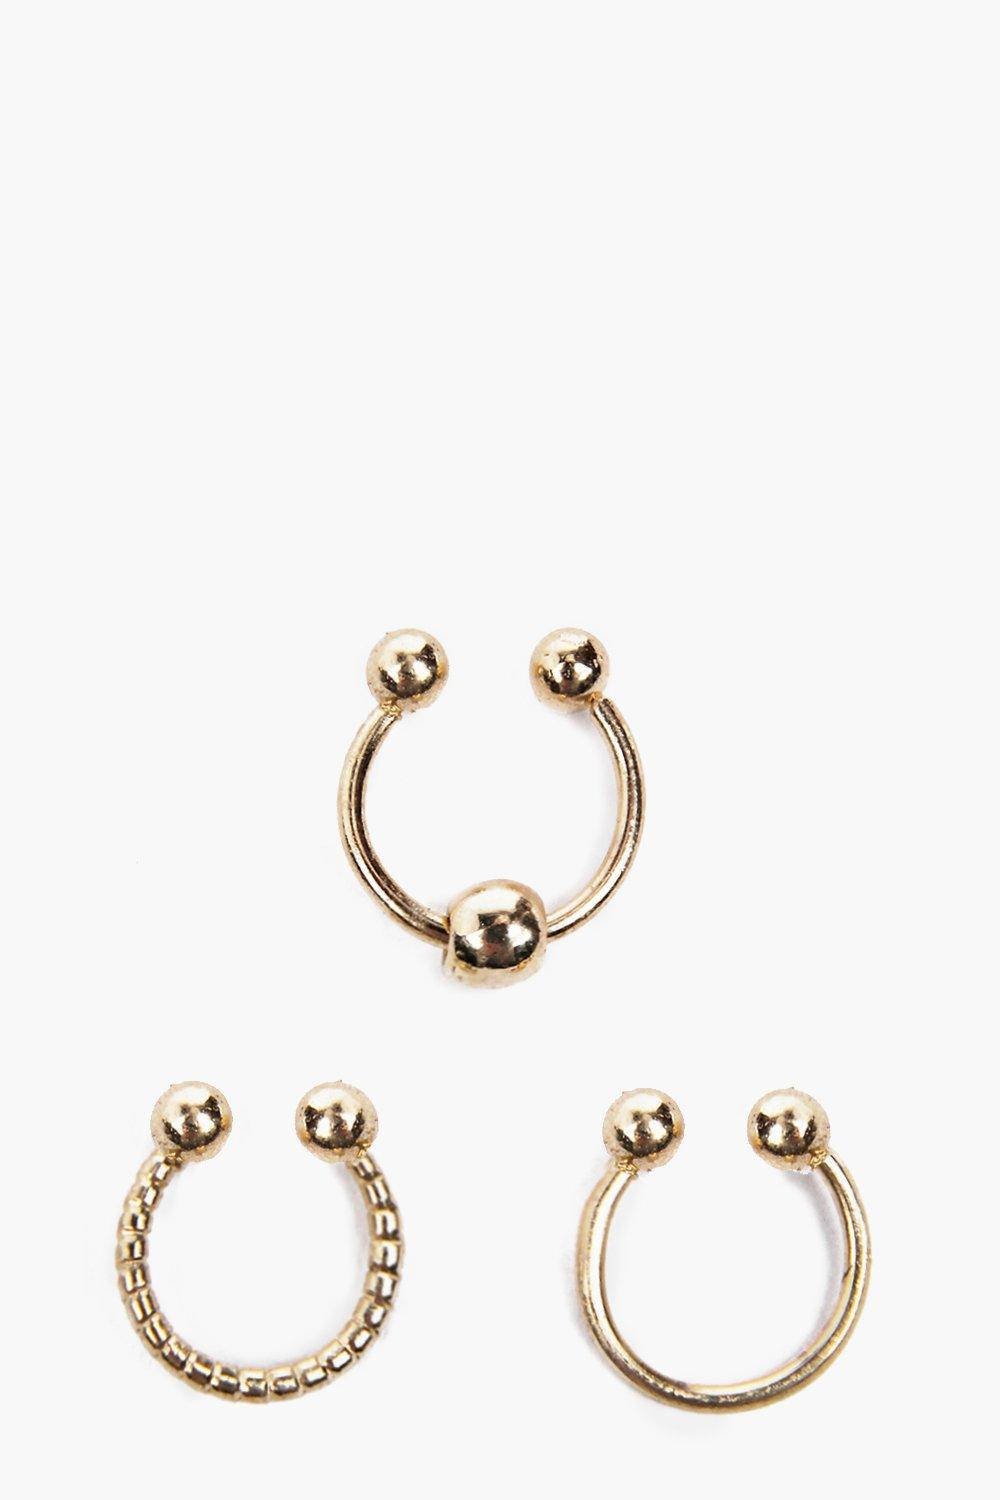 Paige Simple Septum Ring Set